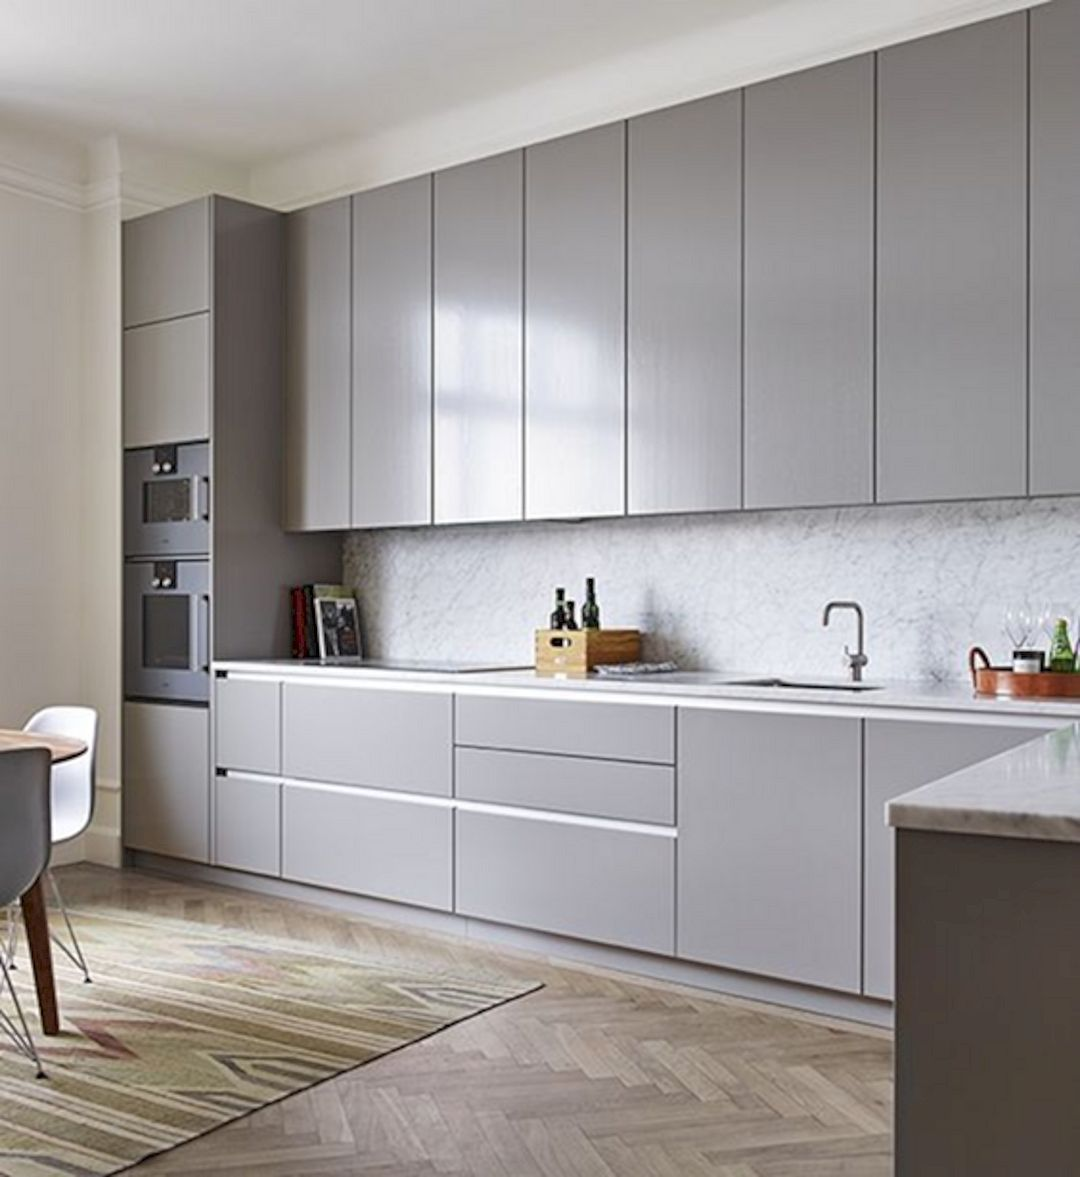 Different Color Kitchen Cabinets Html on different color kitchen appliances, different colors for kitchens, different color kitchen islands, different color refrigerators, different color granite kitchen countertops, different color crown molding, different color bathroom,